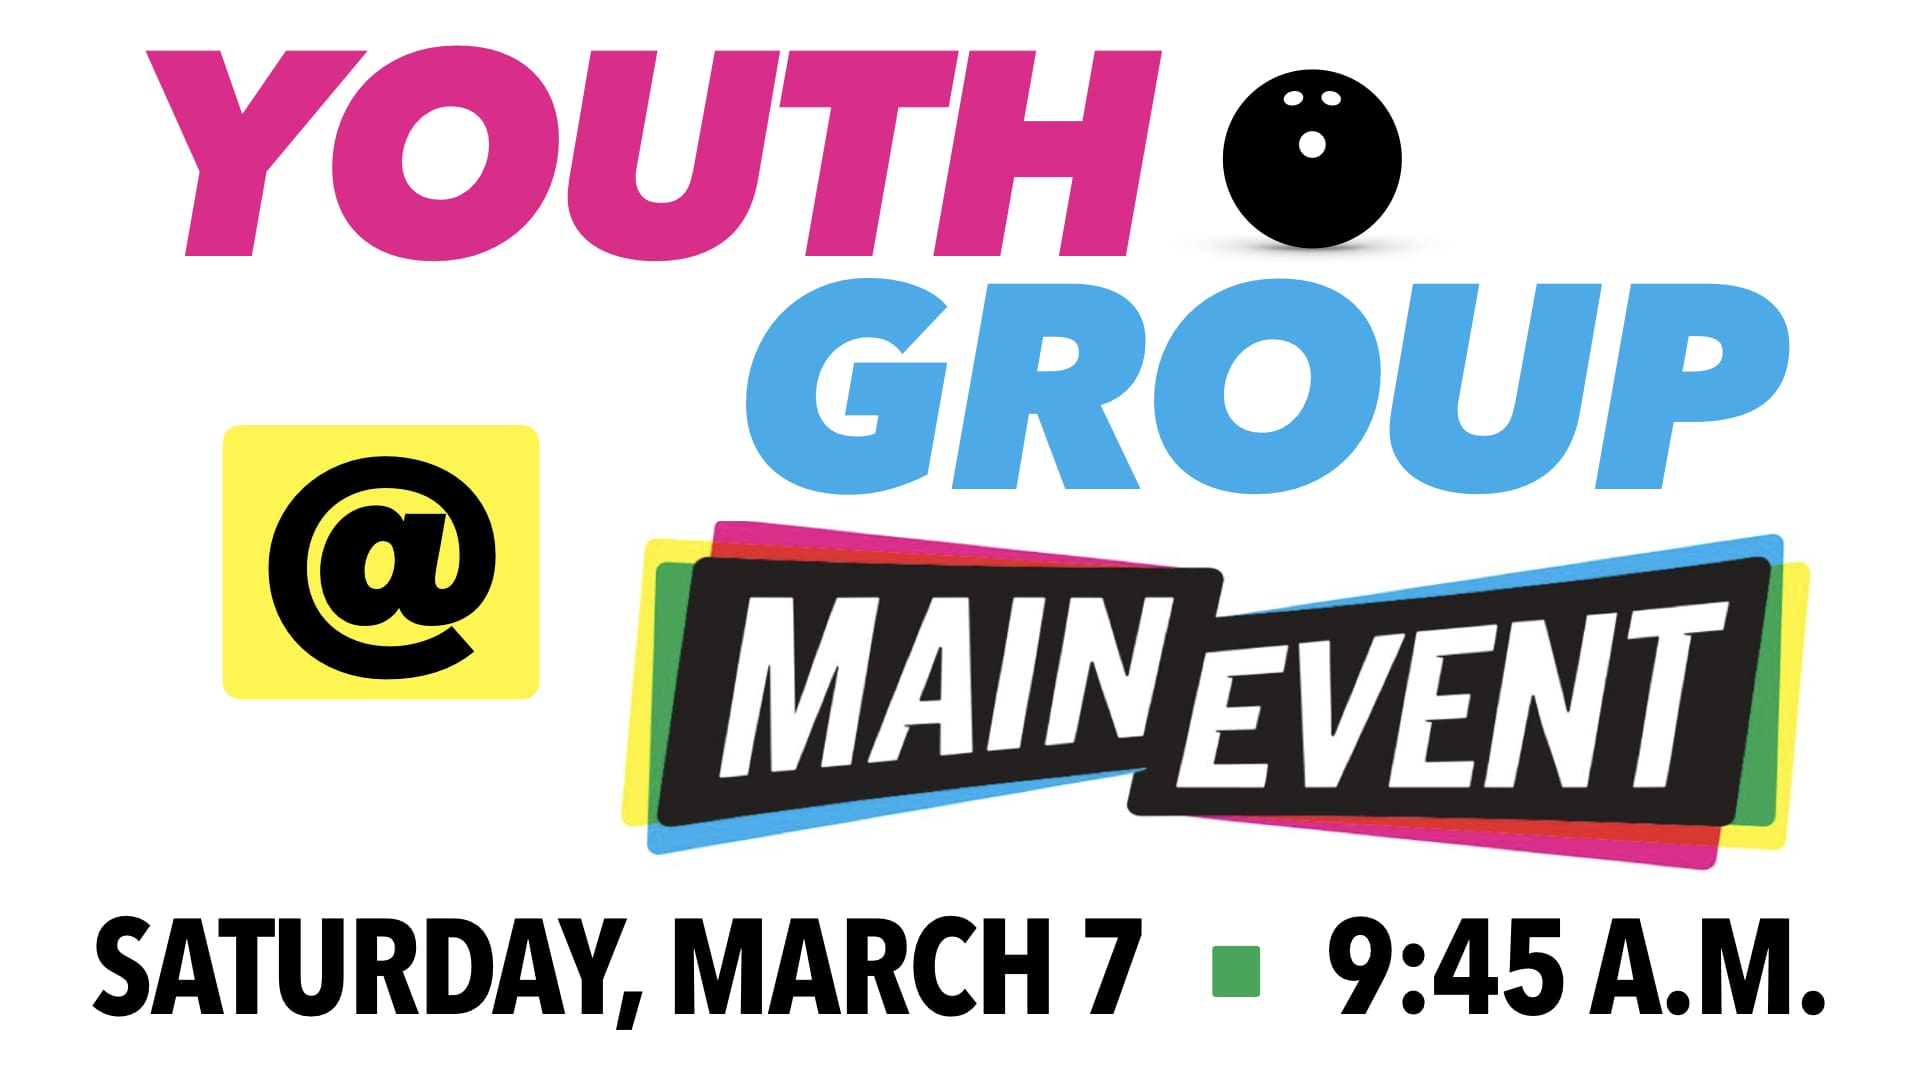 RLC's Youth Group Fellowship at Main Event on Saturday, March 7 at 9:45 a.m.